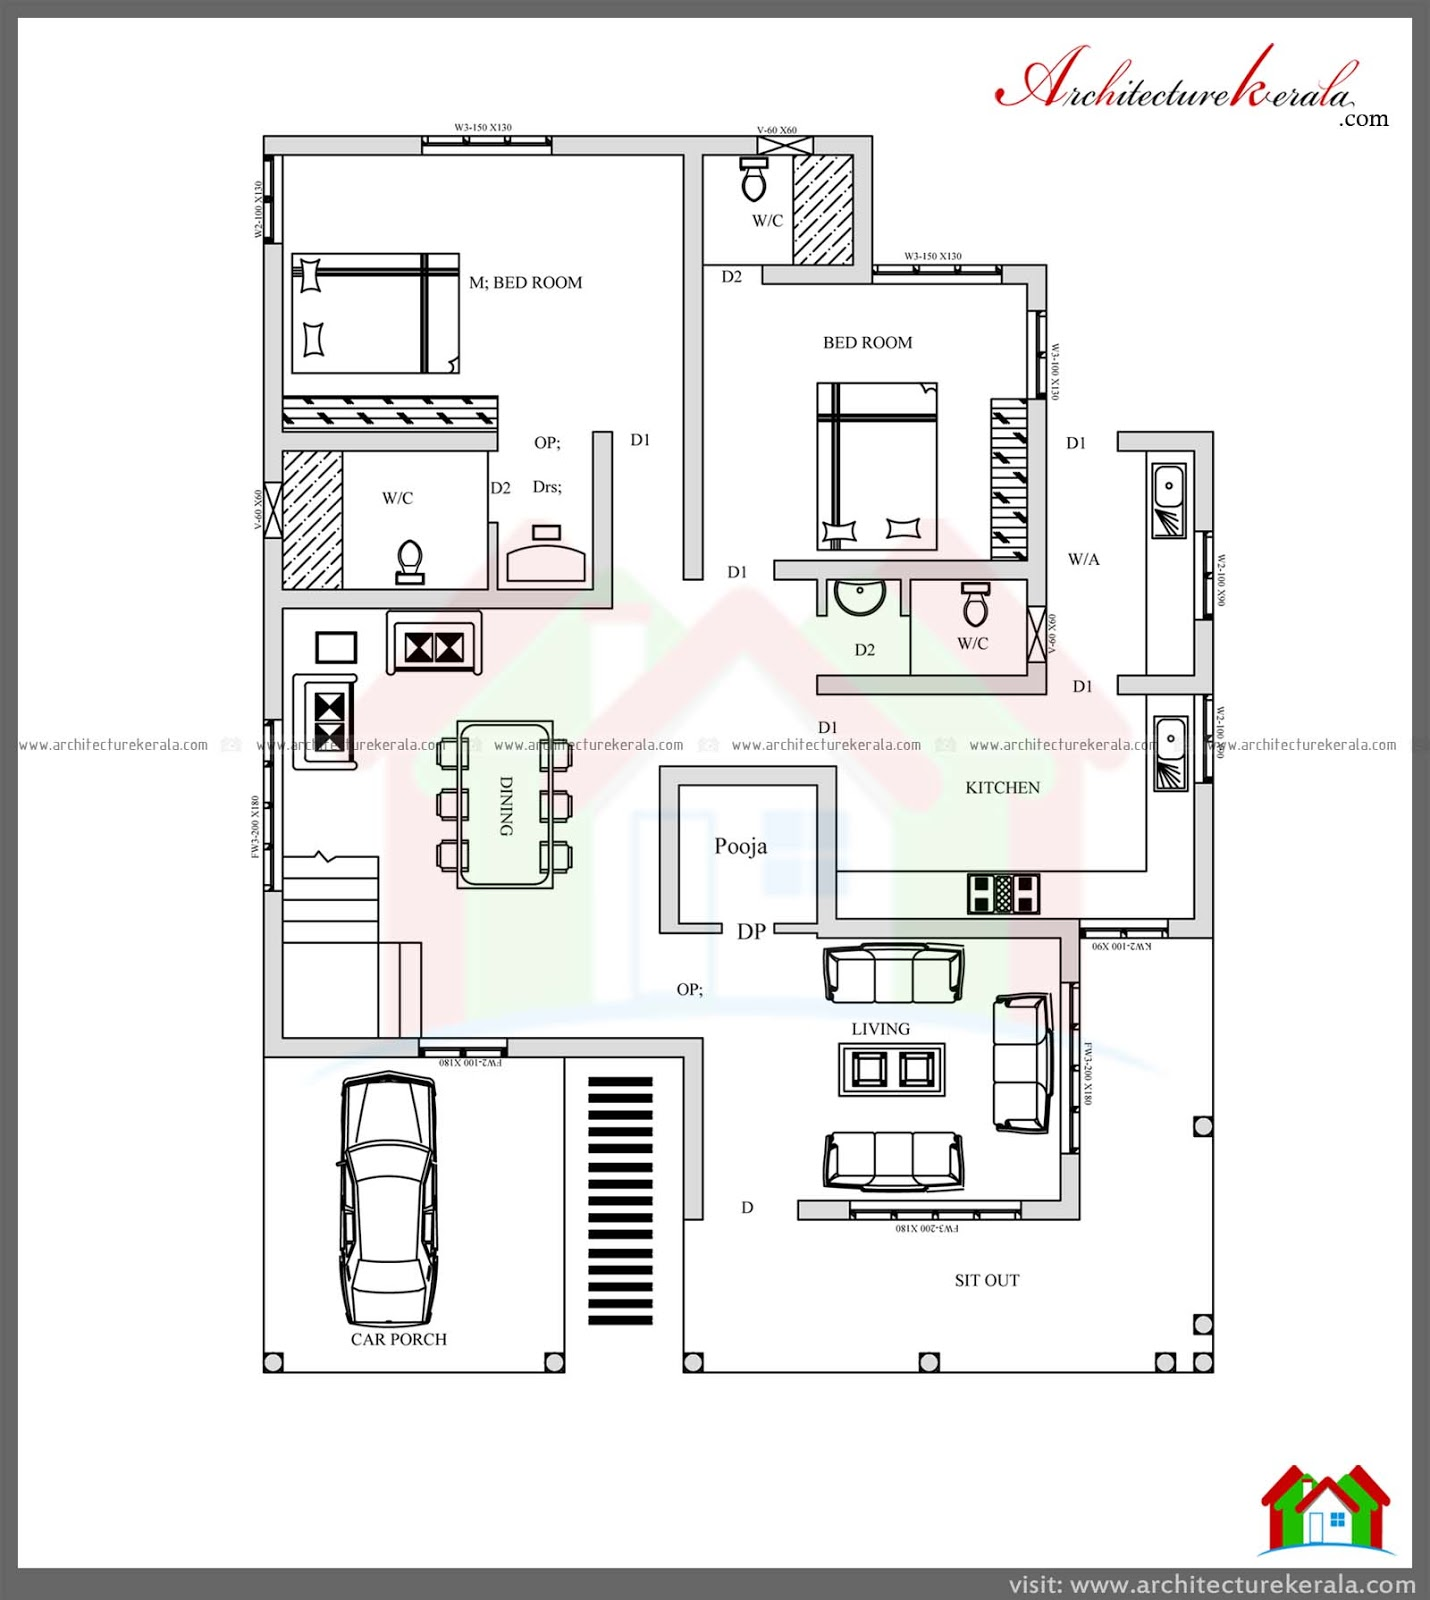 4 bed house plan with pooja room architecture kerala for Kerala house plan images